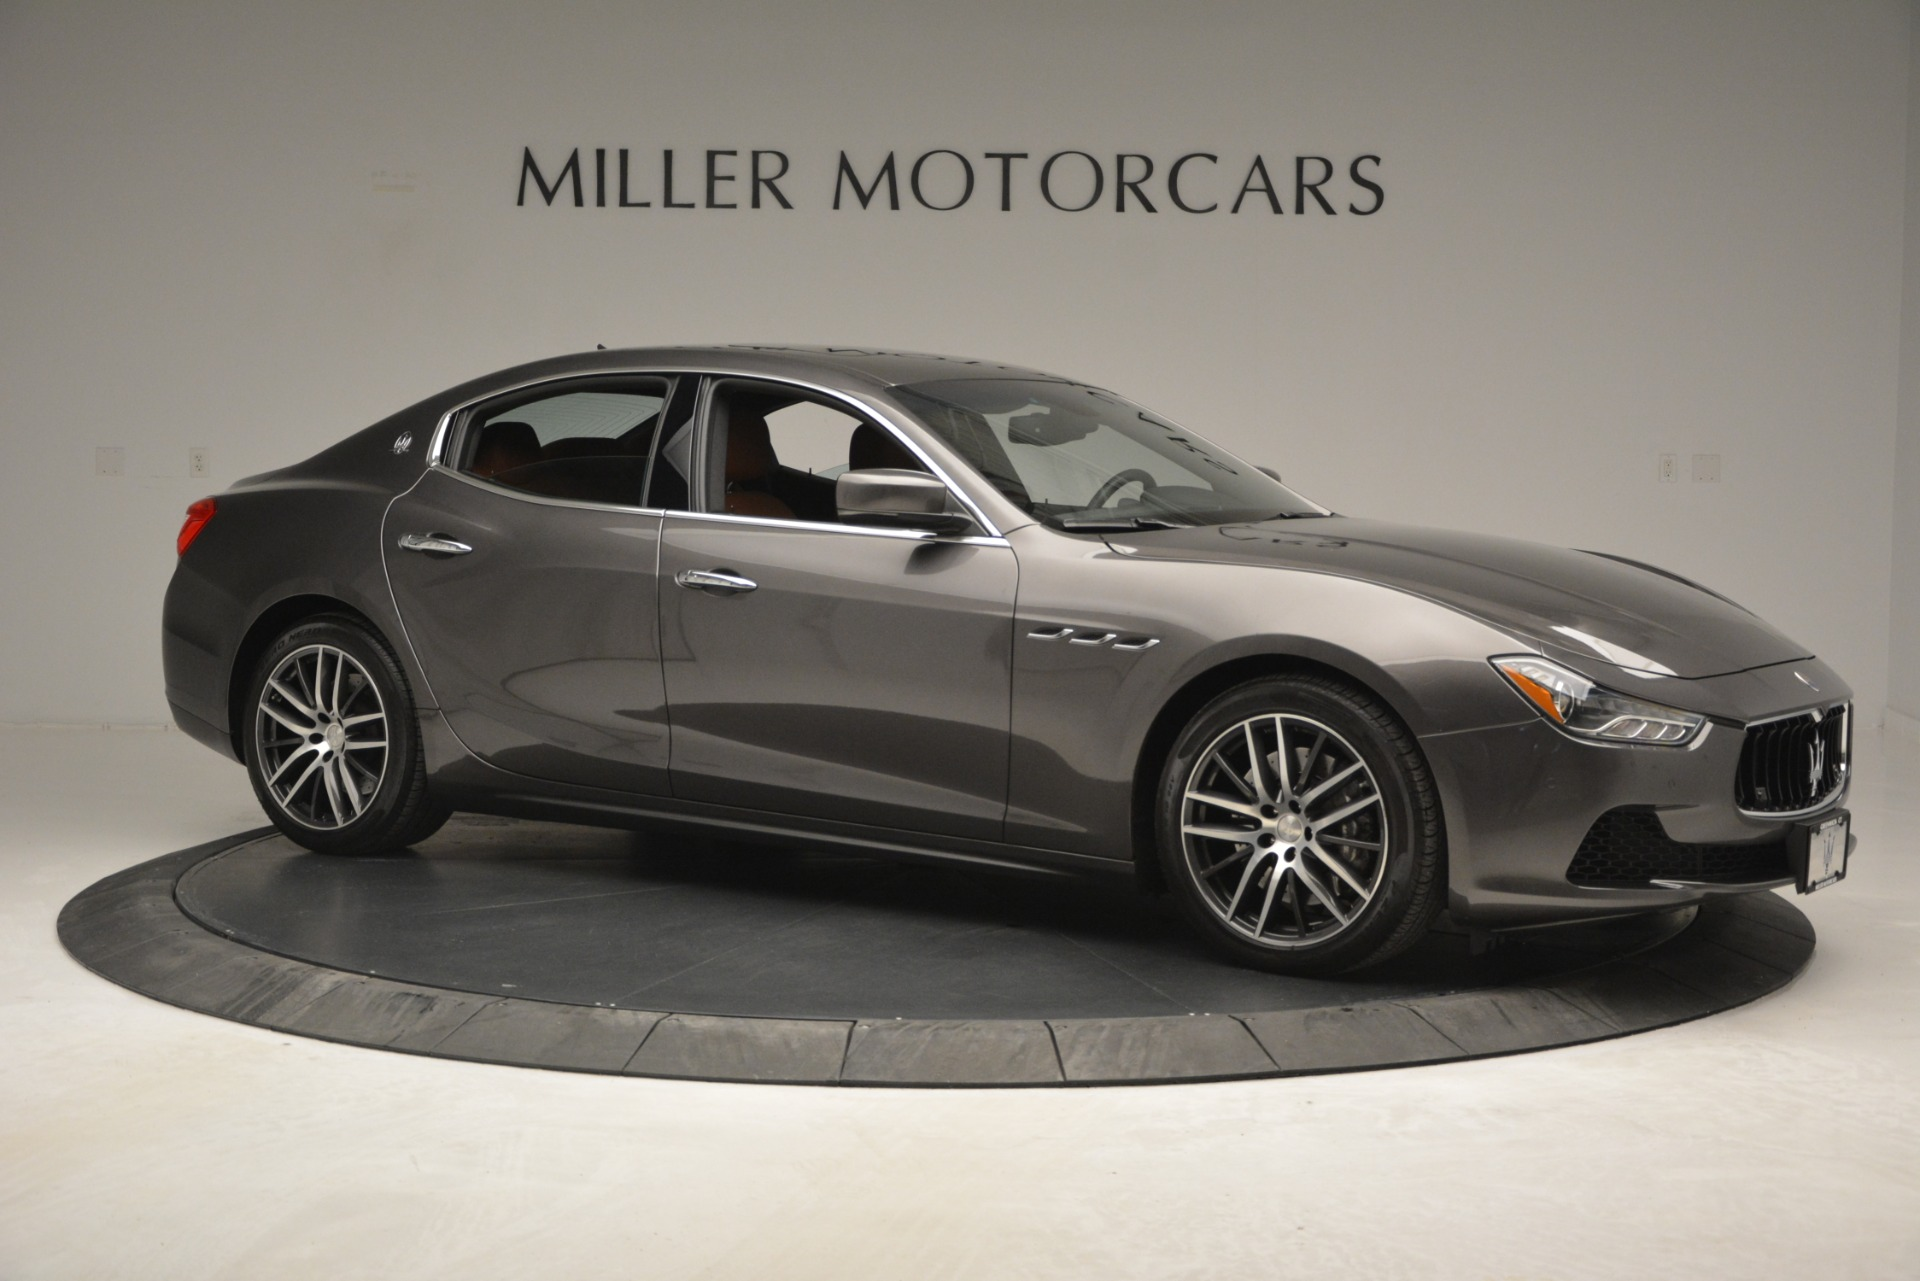 Used 2015 Maserati Ghibli S Q4 For Sale In Greenwich, CT 2941_p11